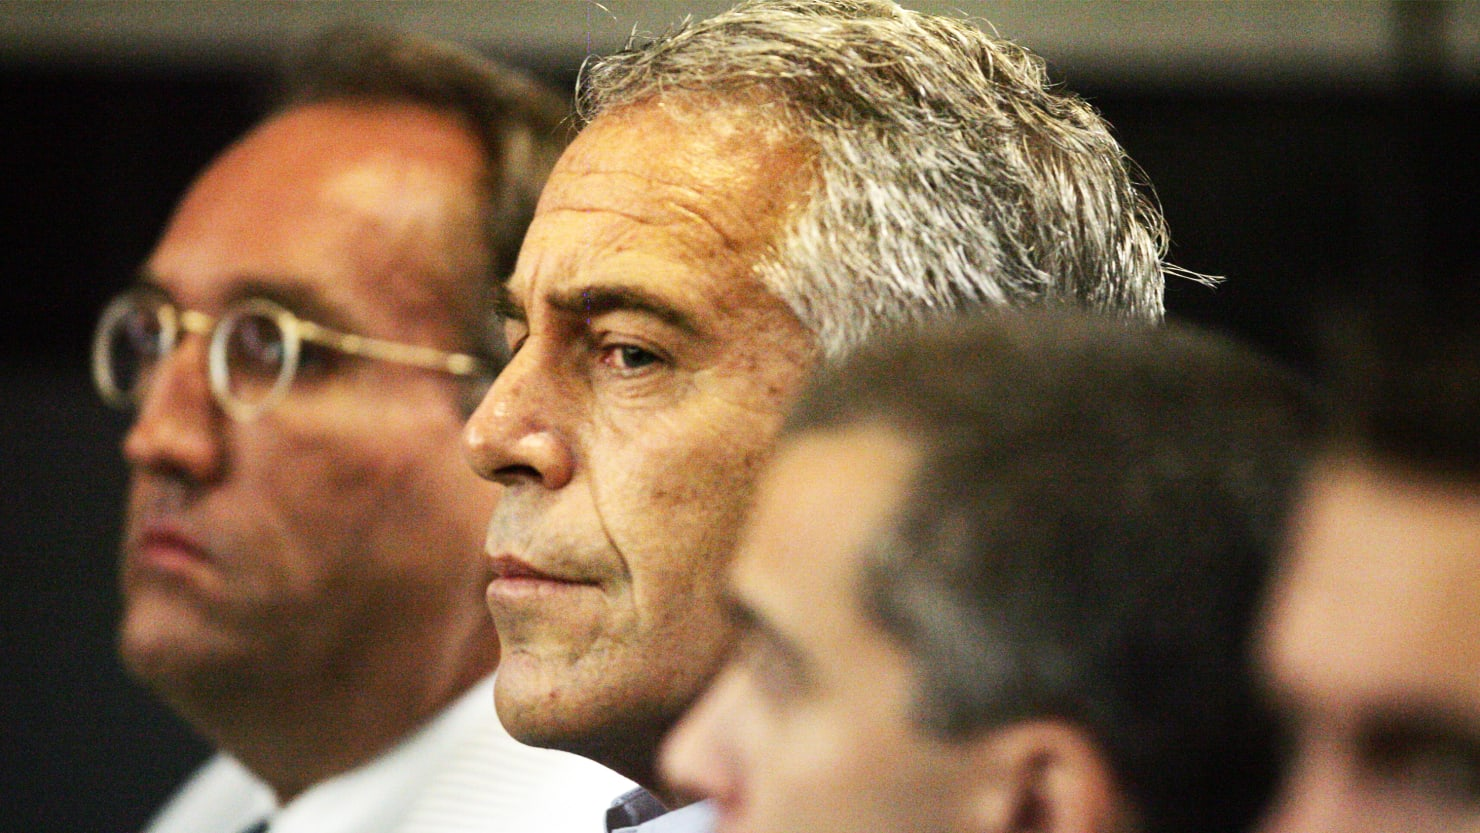 Epstein Recruiter Accused of S&M Trysts: I'm a Victim Too